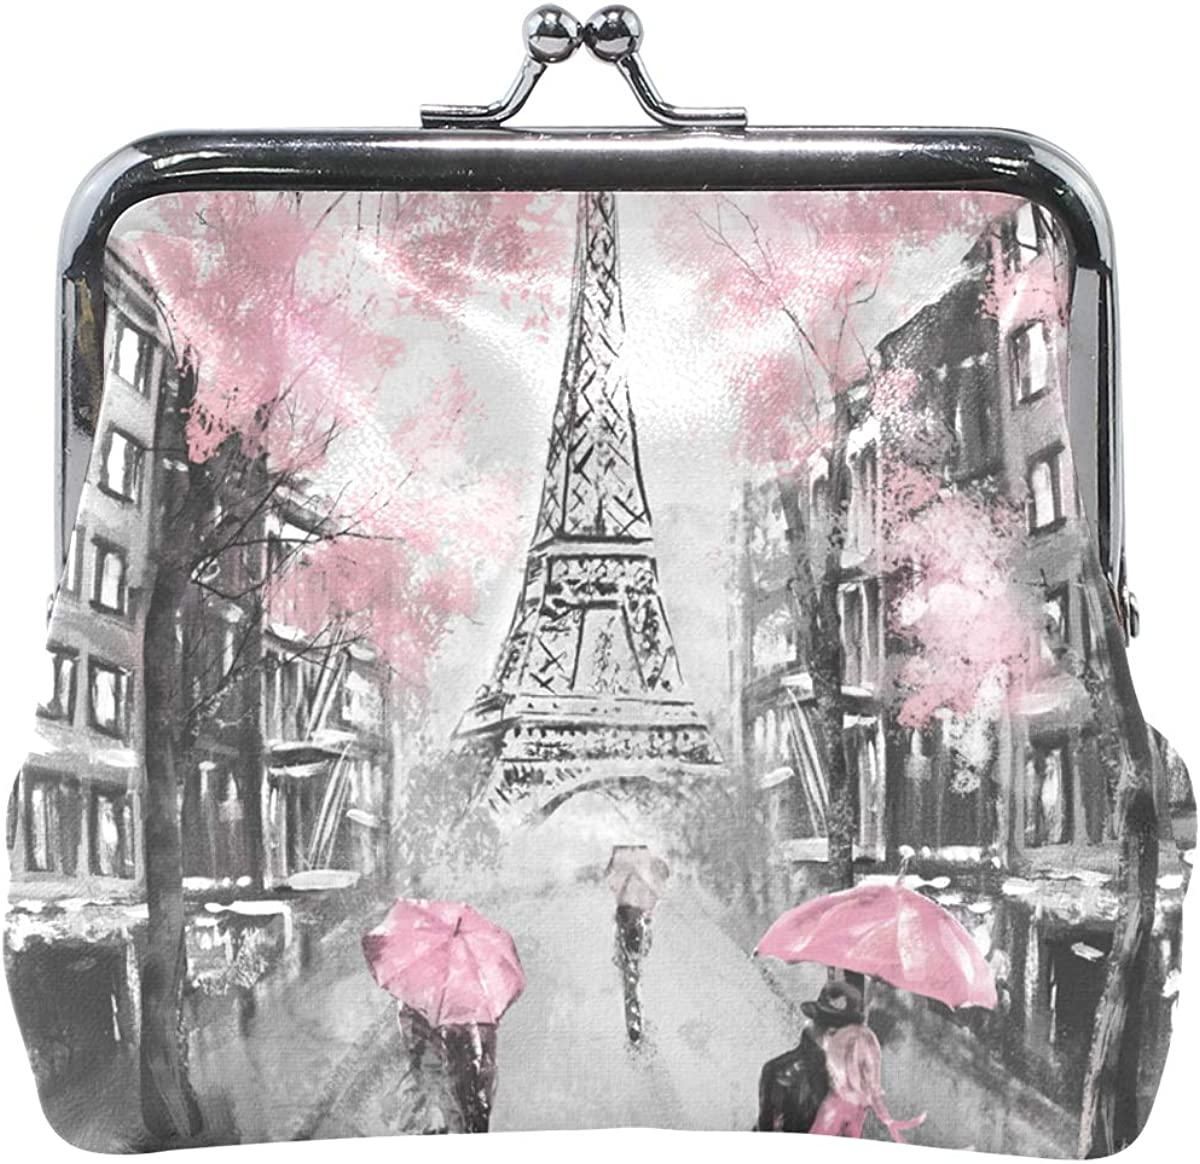 Challenge the lowest price Oil Painting New Free Shipping Paris Eiffel Tower Lover Clasp Purse Leather P Coin